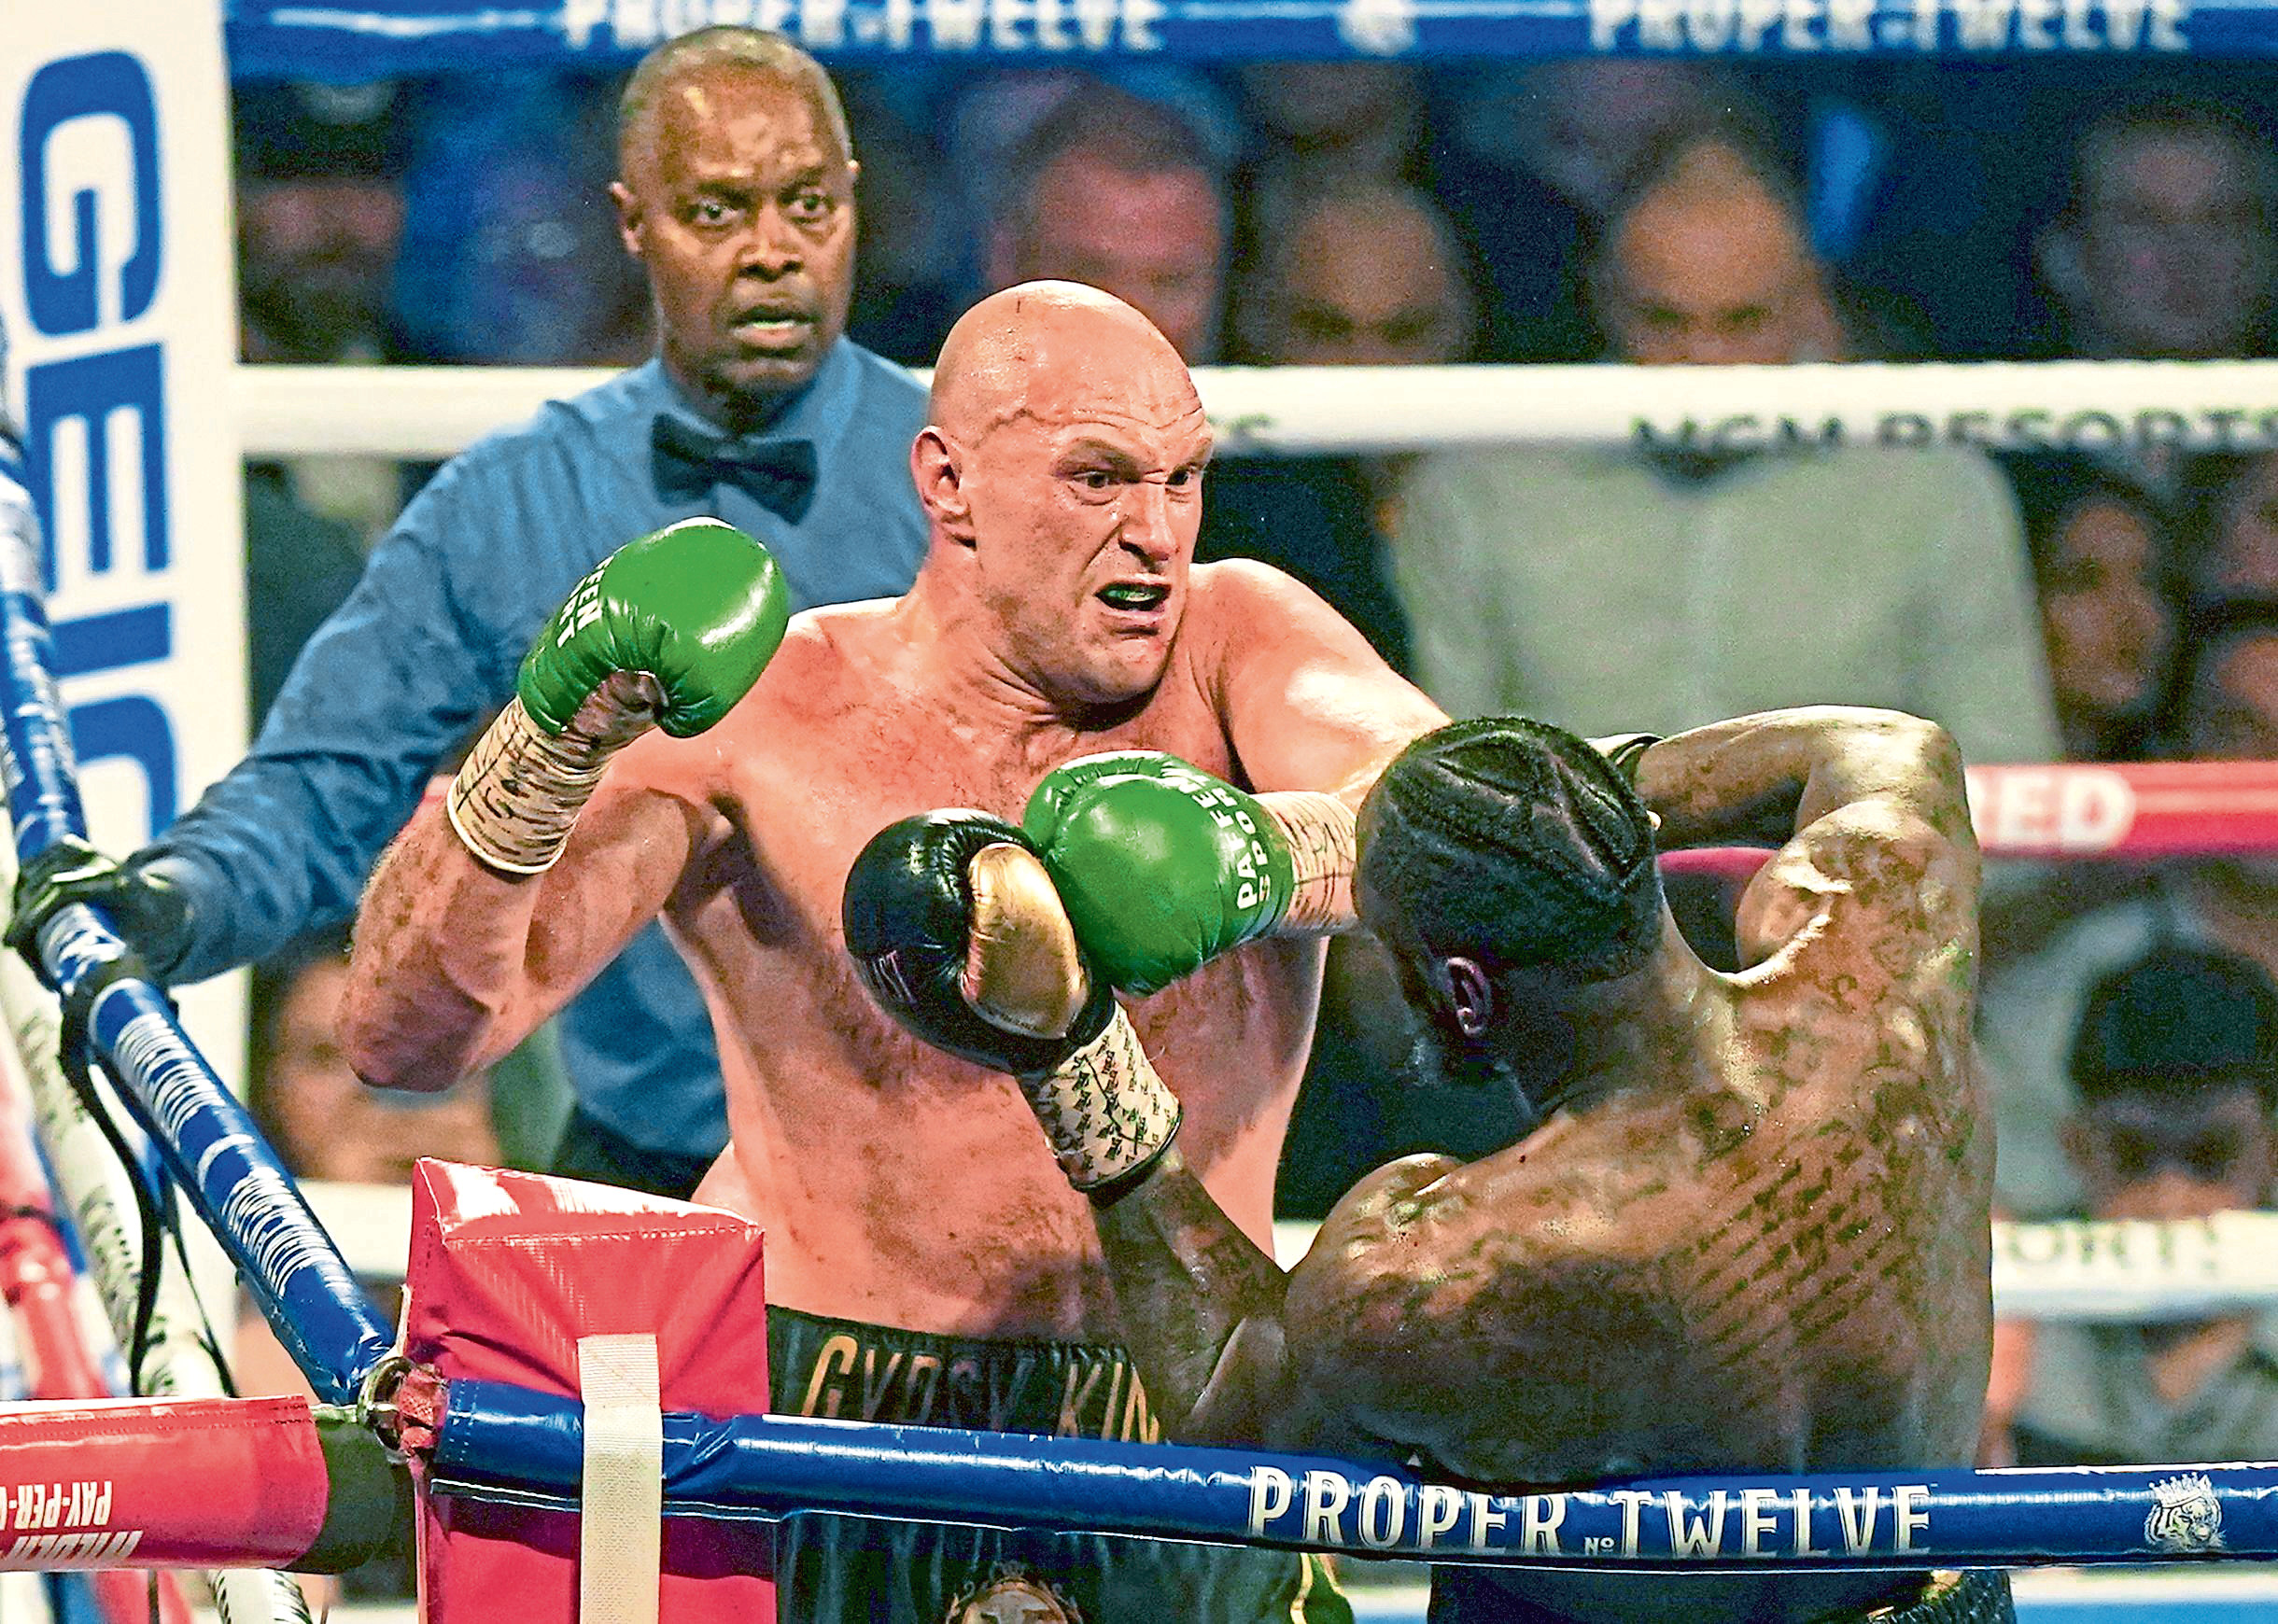 Editorial Use Only Mandatory Credit: Photo by Dave Shopland/BPI/REX/Shutterstock (10560953bd) Tyson Fury   beats  Deontay Wilder by TKO in 7th Round Deontay Wilder v Tyson Fury II, WBC heavyweight title, Boxing rematch, MGM Grand, Las Vegas, USA - 22 Feb 2020